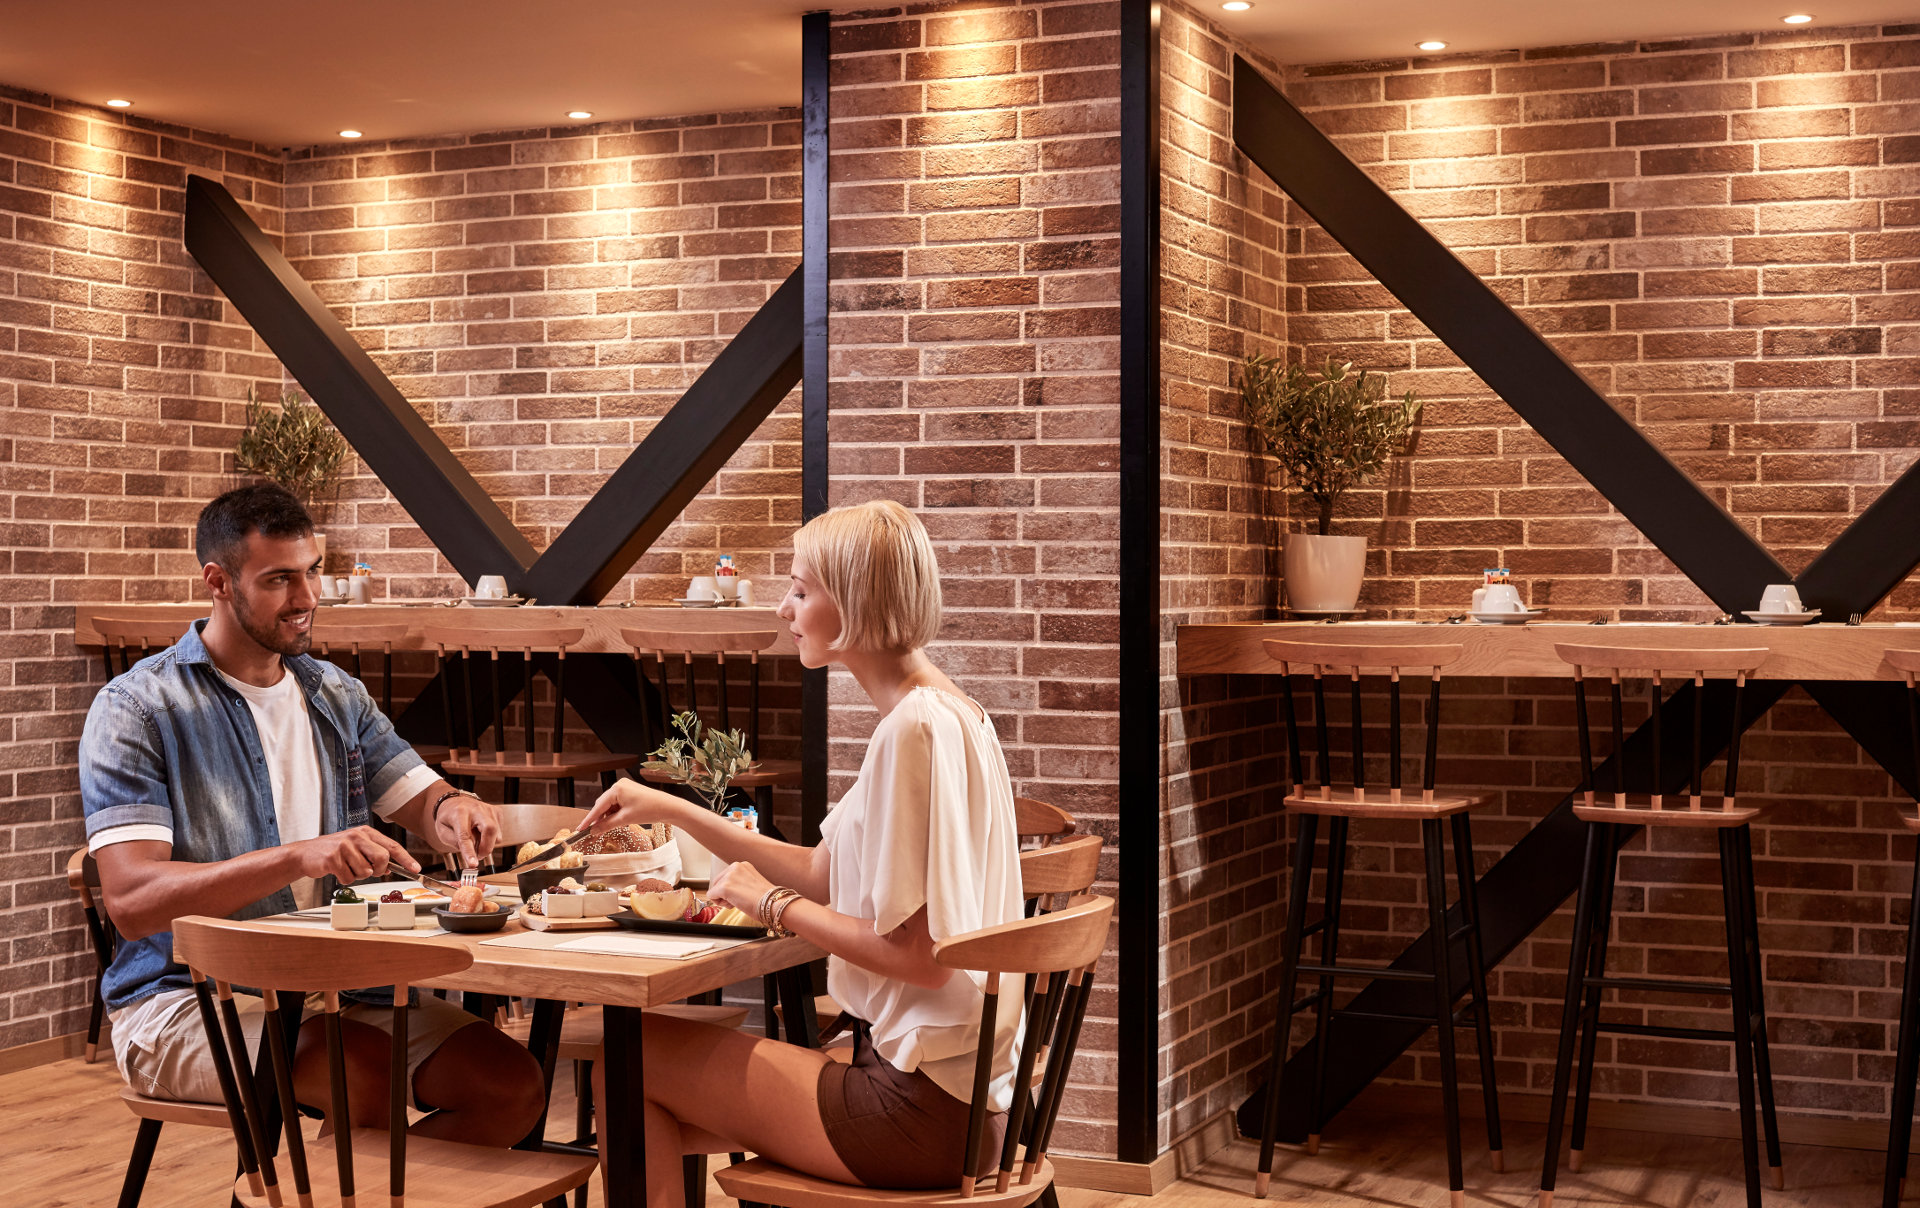 Couple at 626 all day restaurant having a breakfast